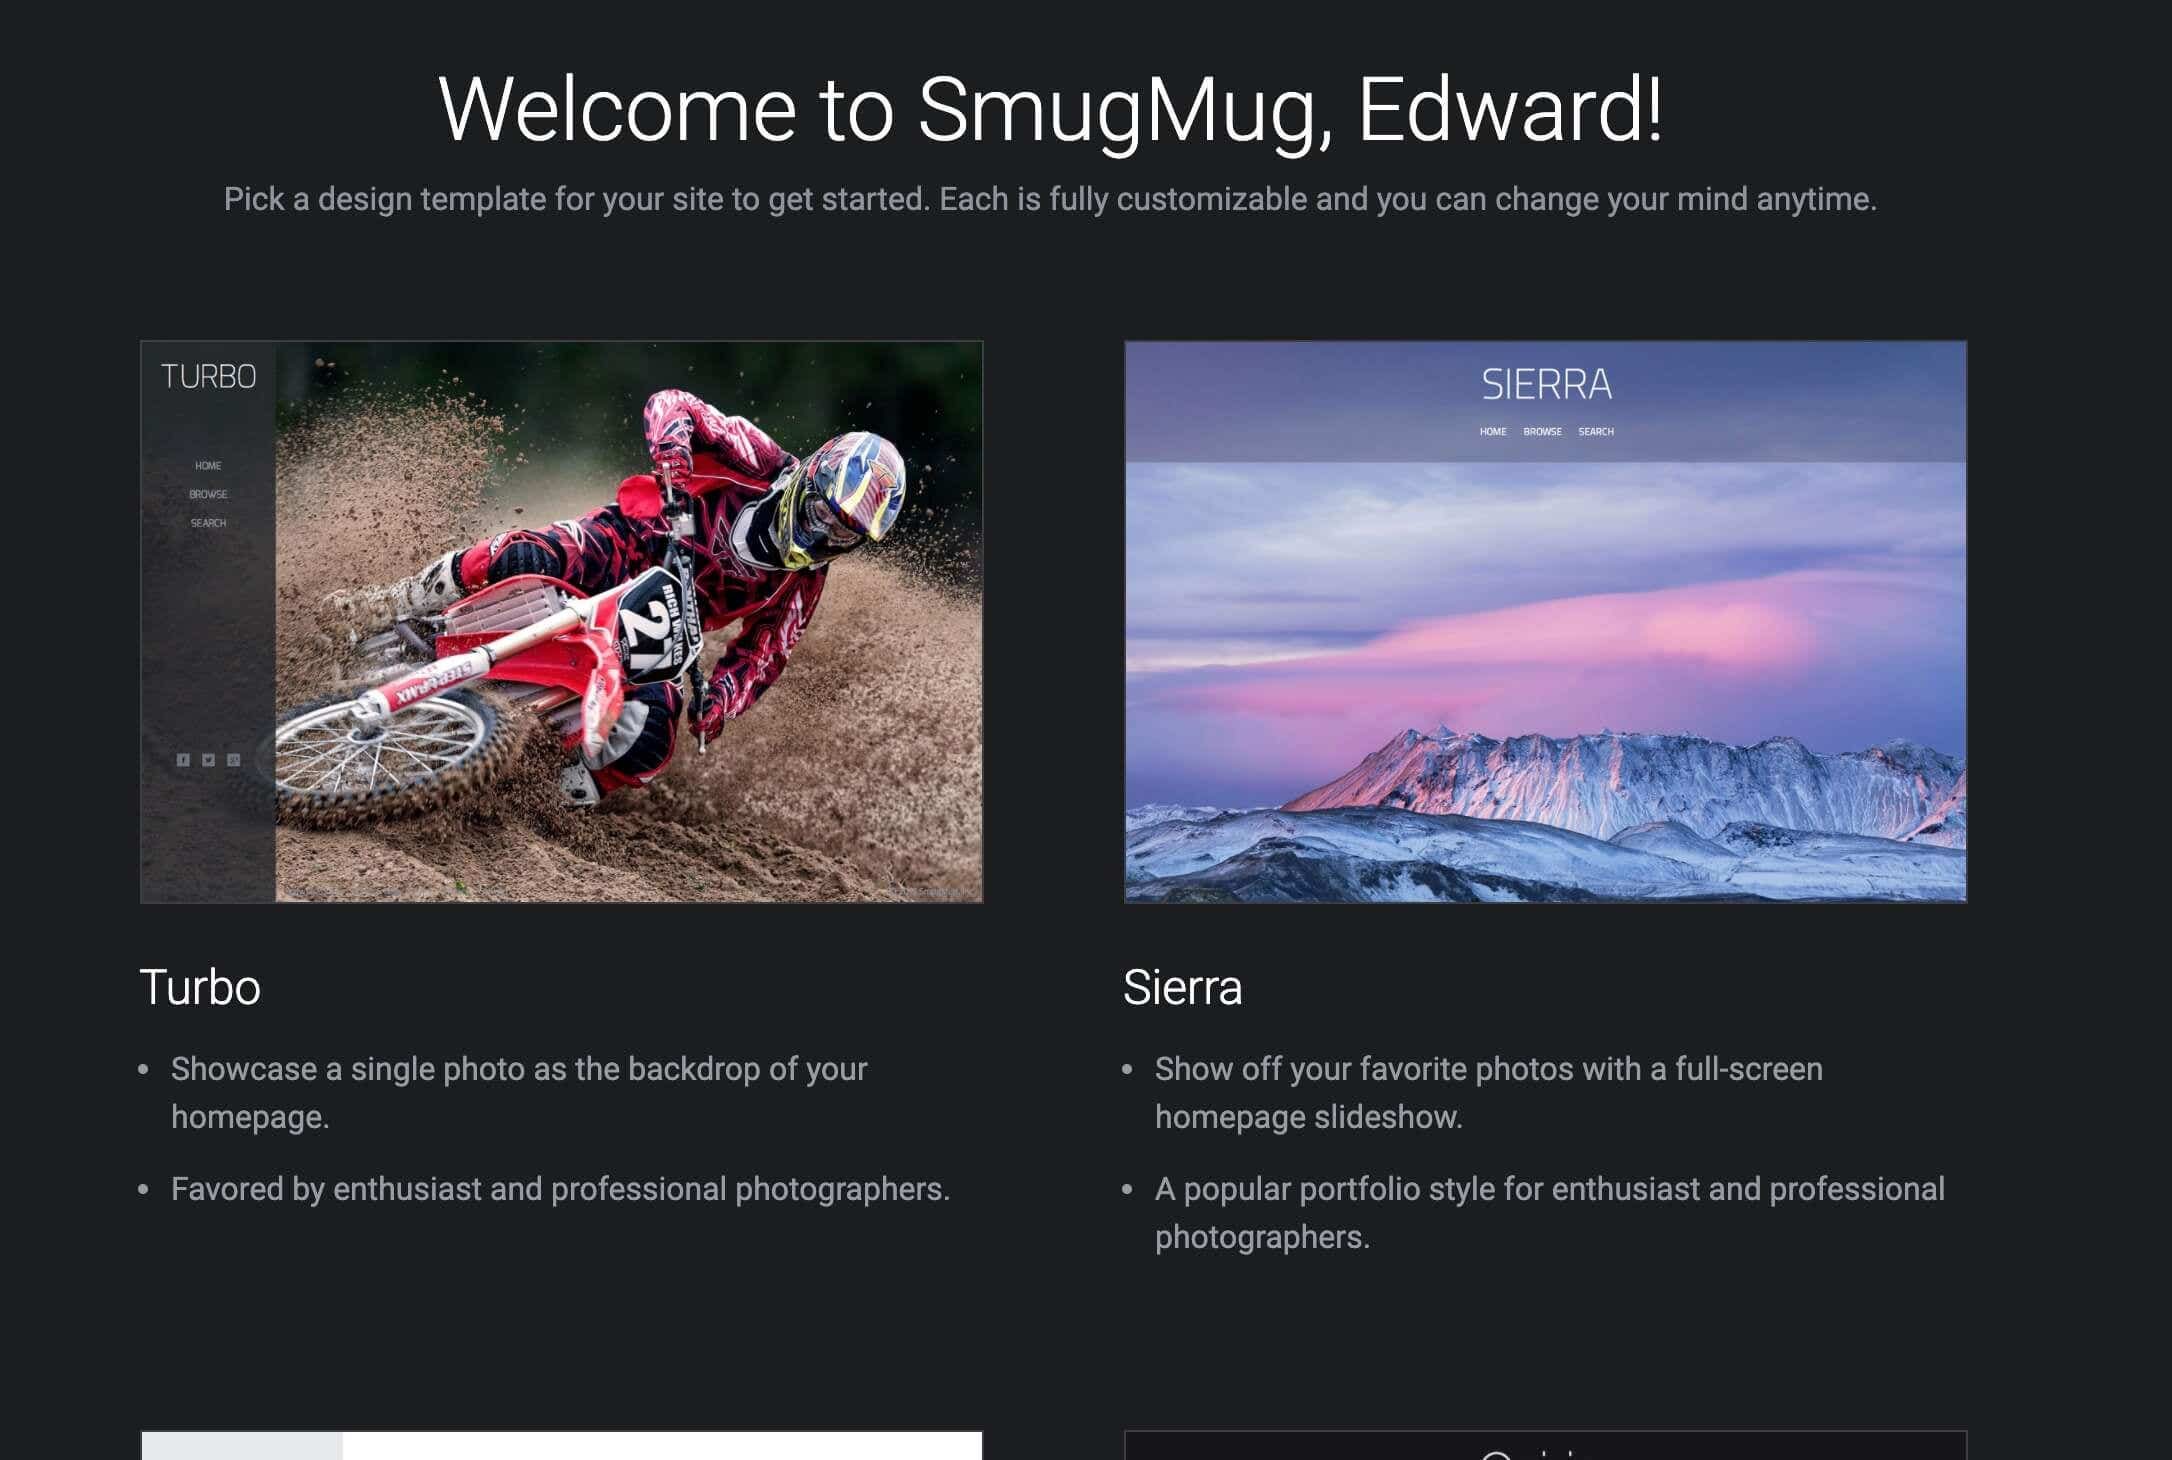 smugmug for art portfolios